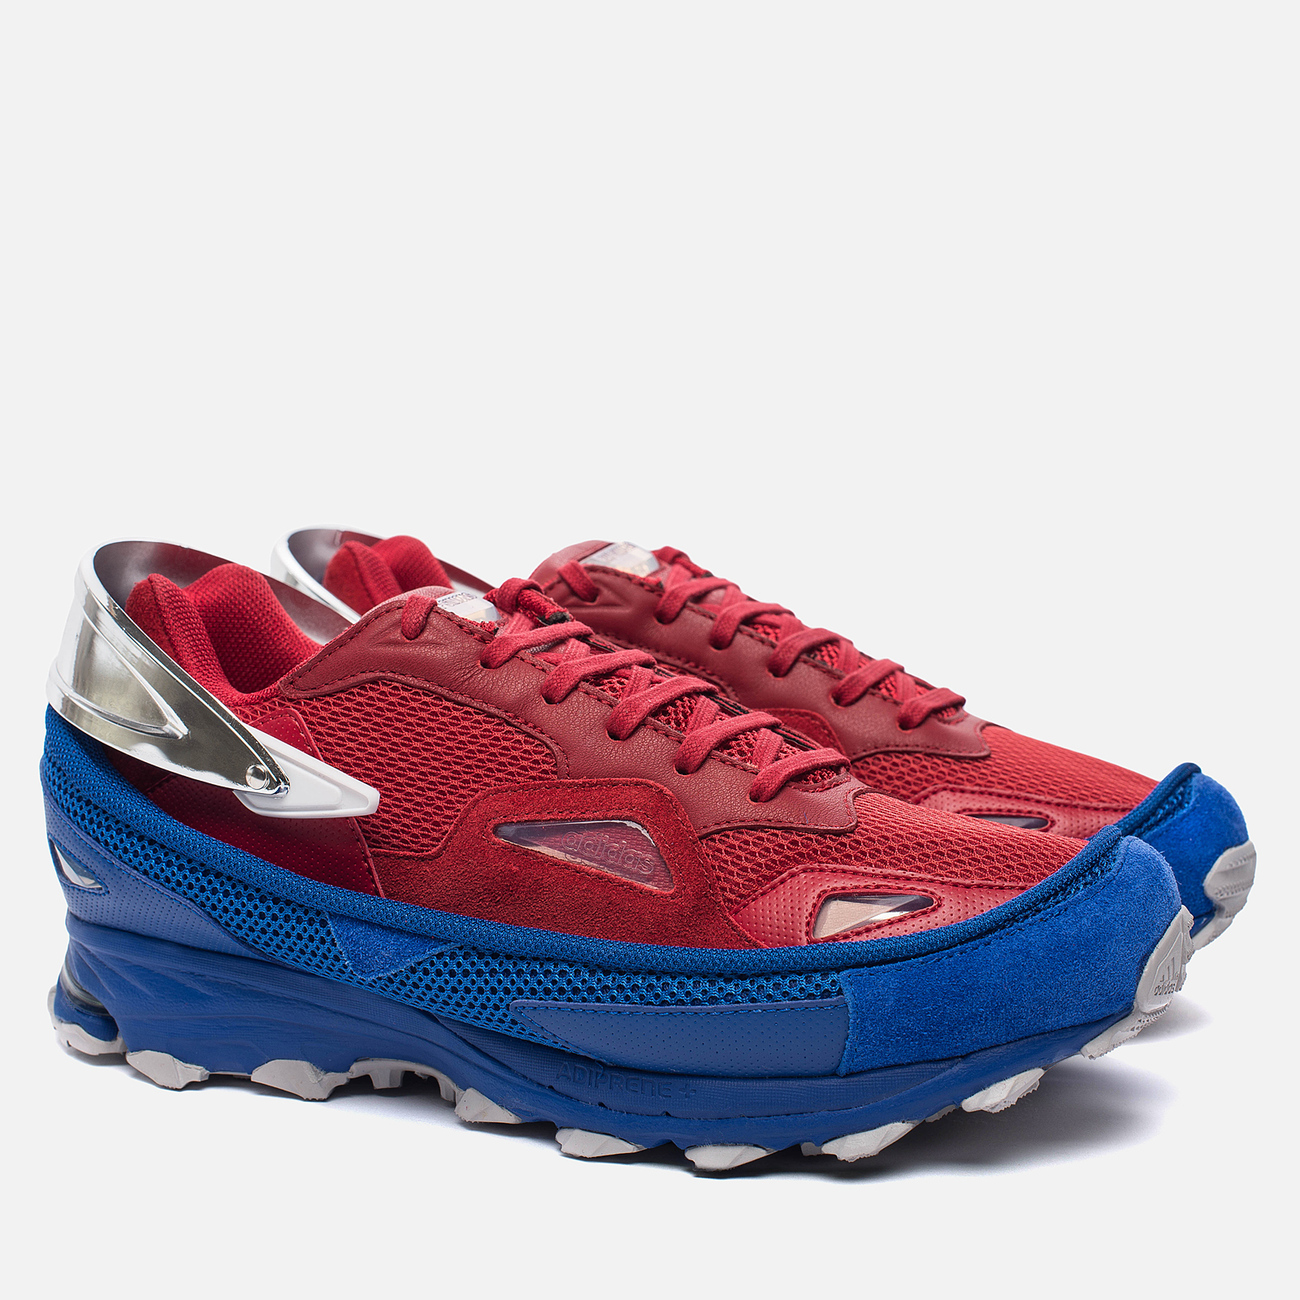 Мужские кроссовки adidas Originals x Raf Simons Response Trail II Power Red/Collegiate Royal